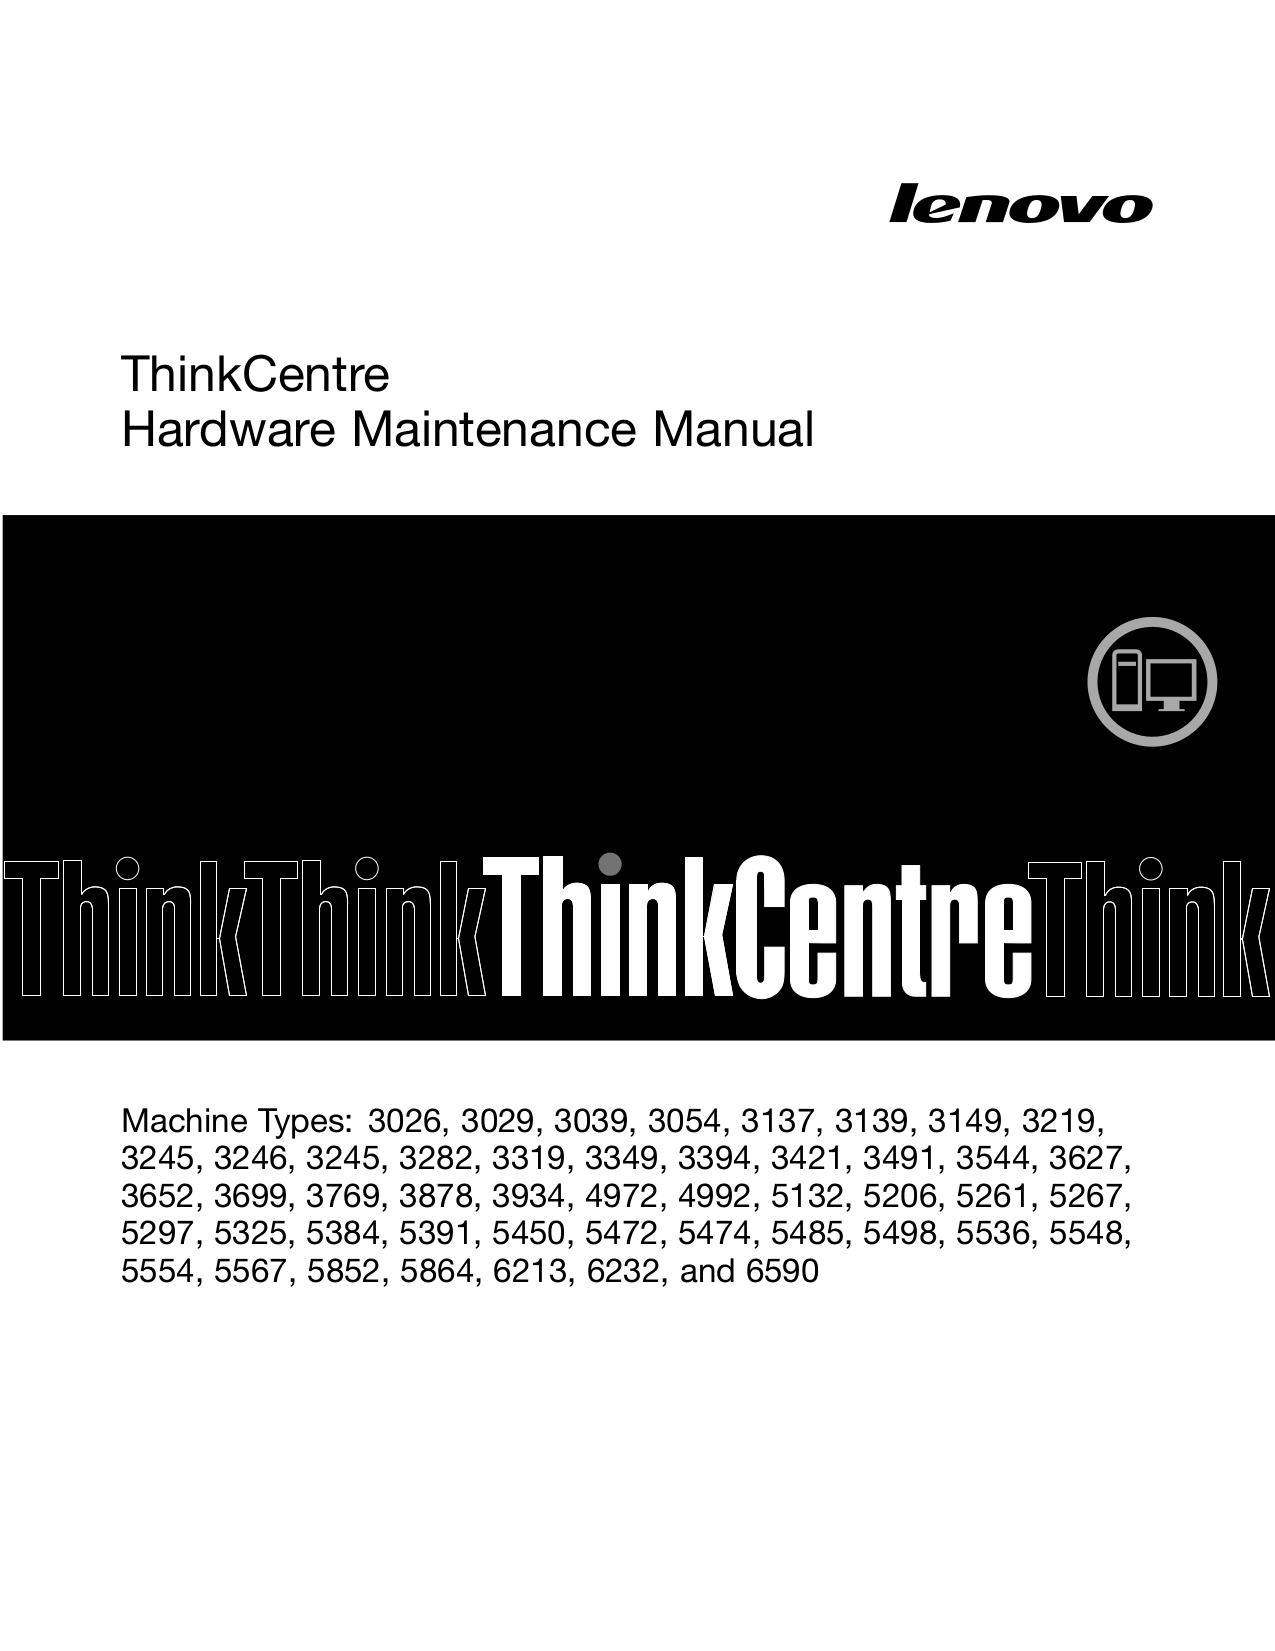 pdf for Lenovo Desktop ThinkCentre M90p 3652 manual